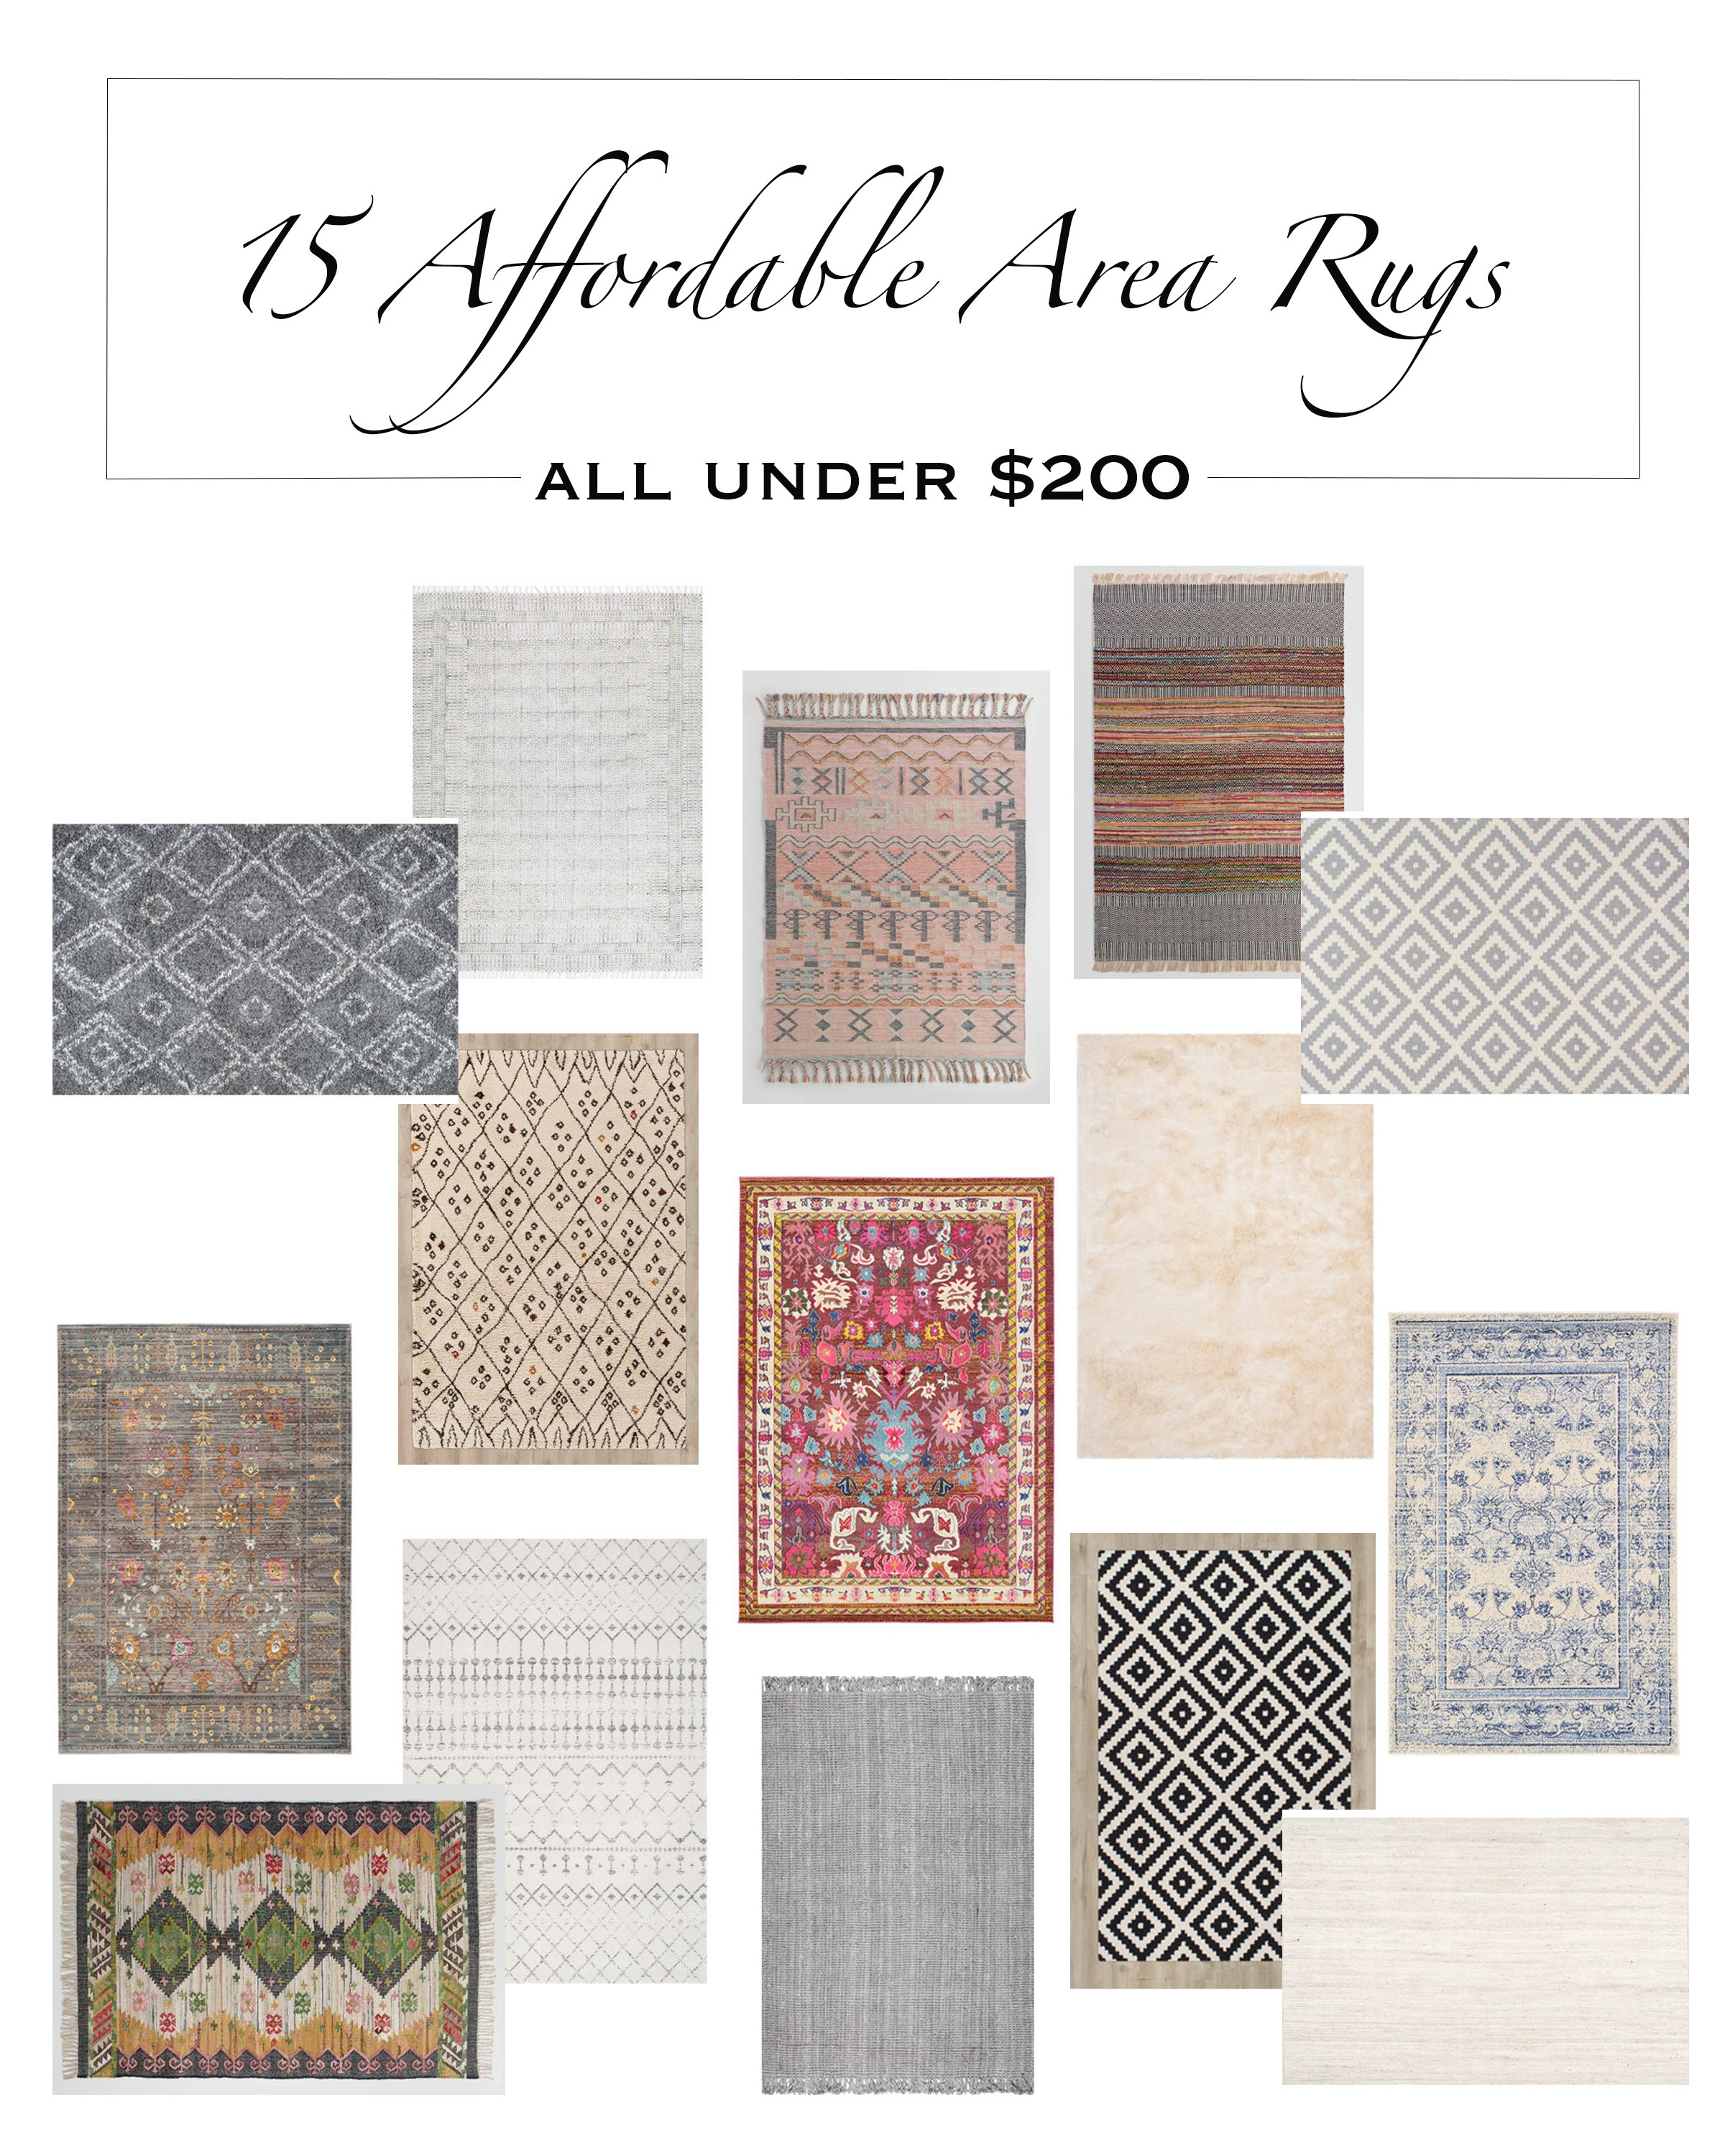 my top 15 affordable area rugs under $200! - addison's wonderland Affordable Area Rugs